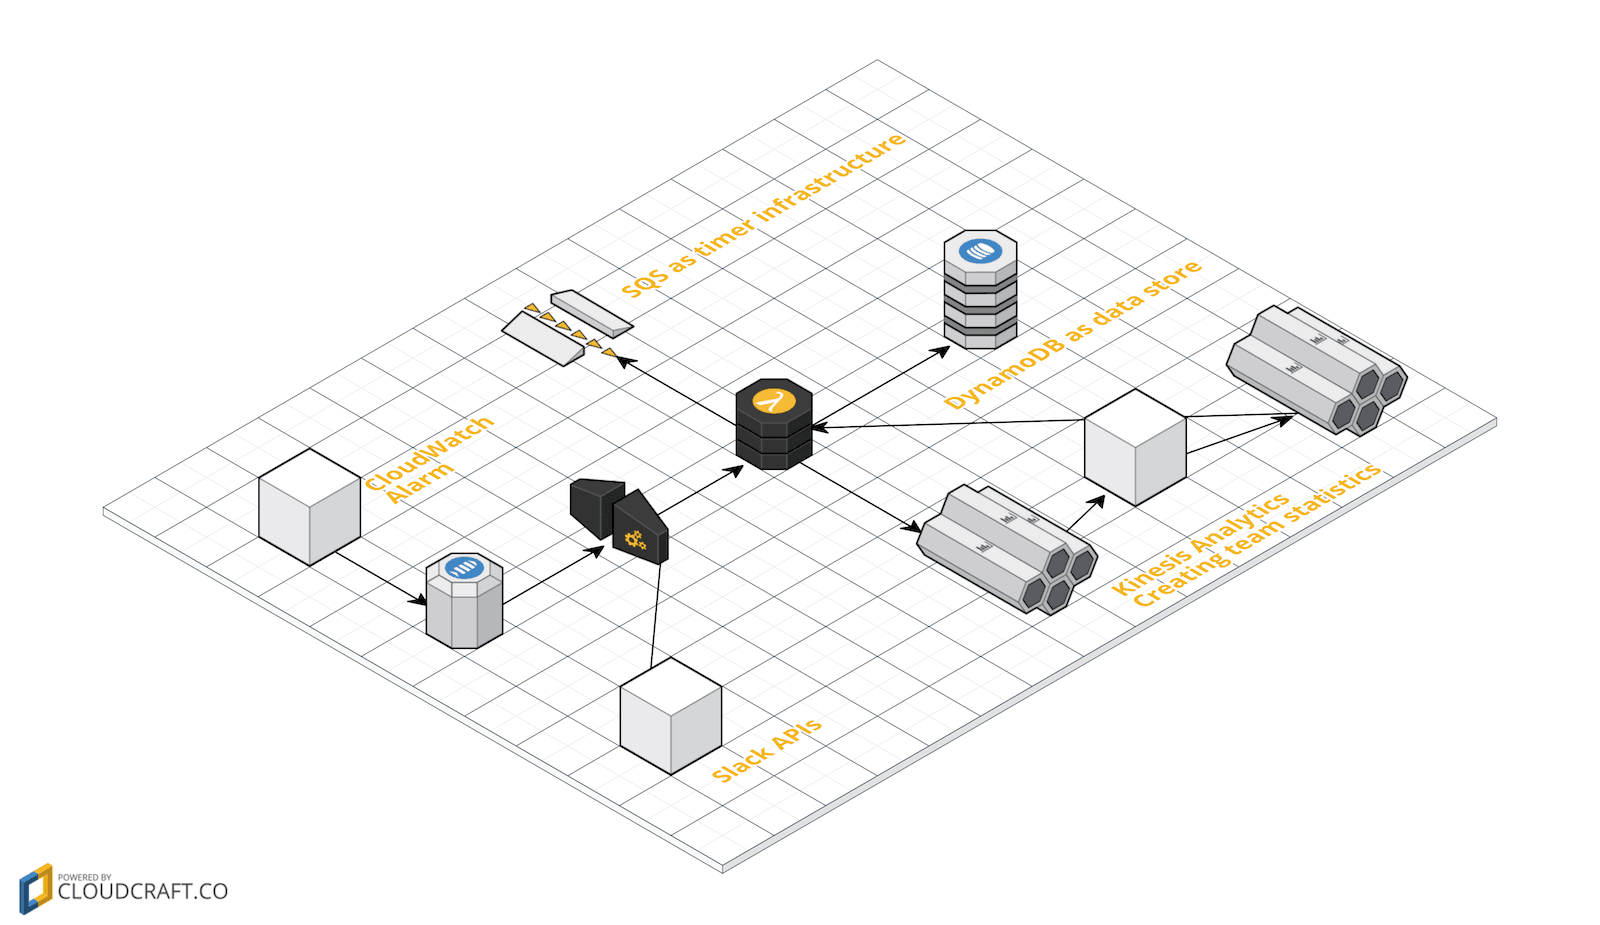 Marbot Our Submission To The Aws Serverless Chatbot